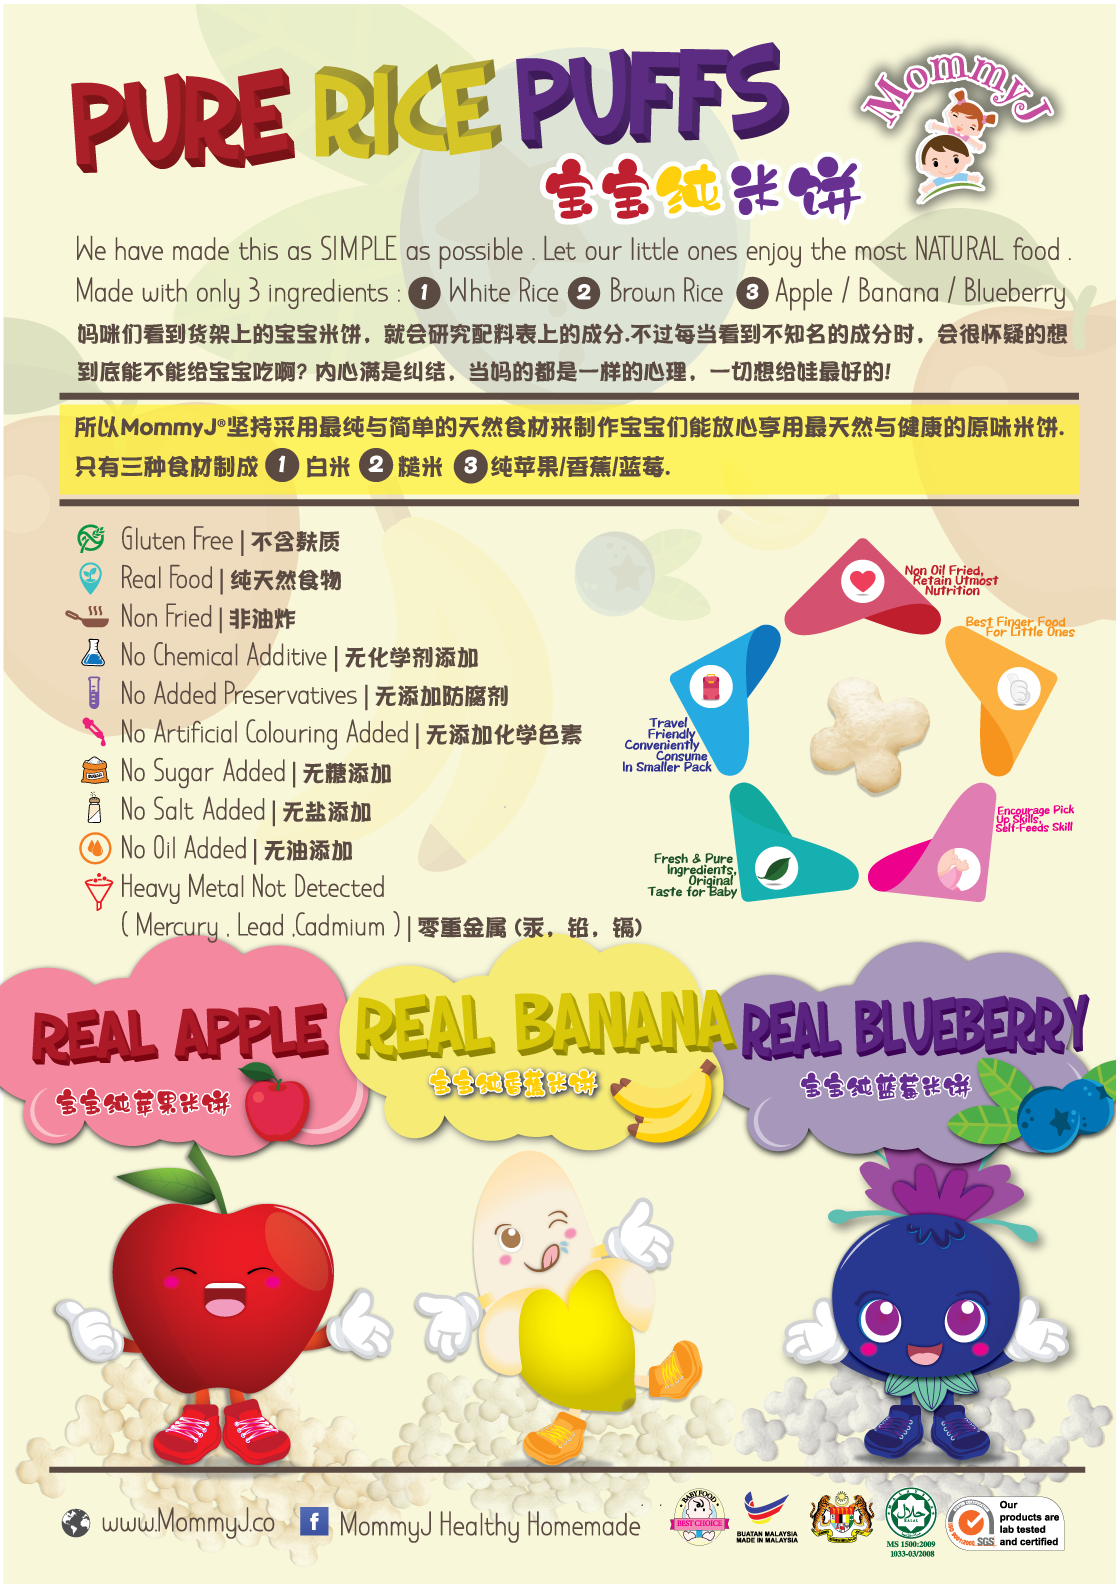 mommyj baby pure rice puff real fruits baby healthy snack 宝宝纯米饼健康零食